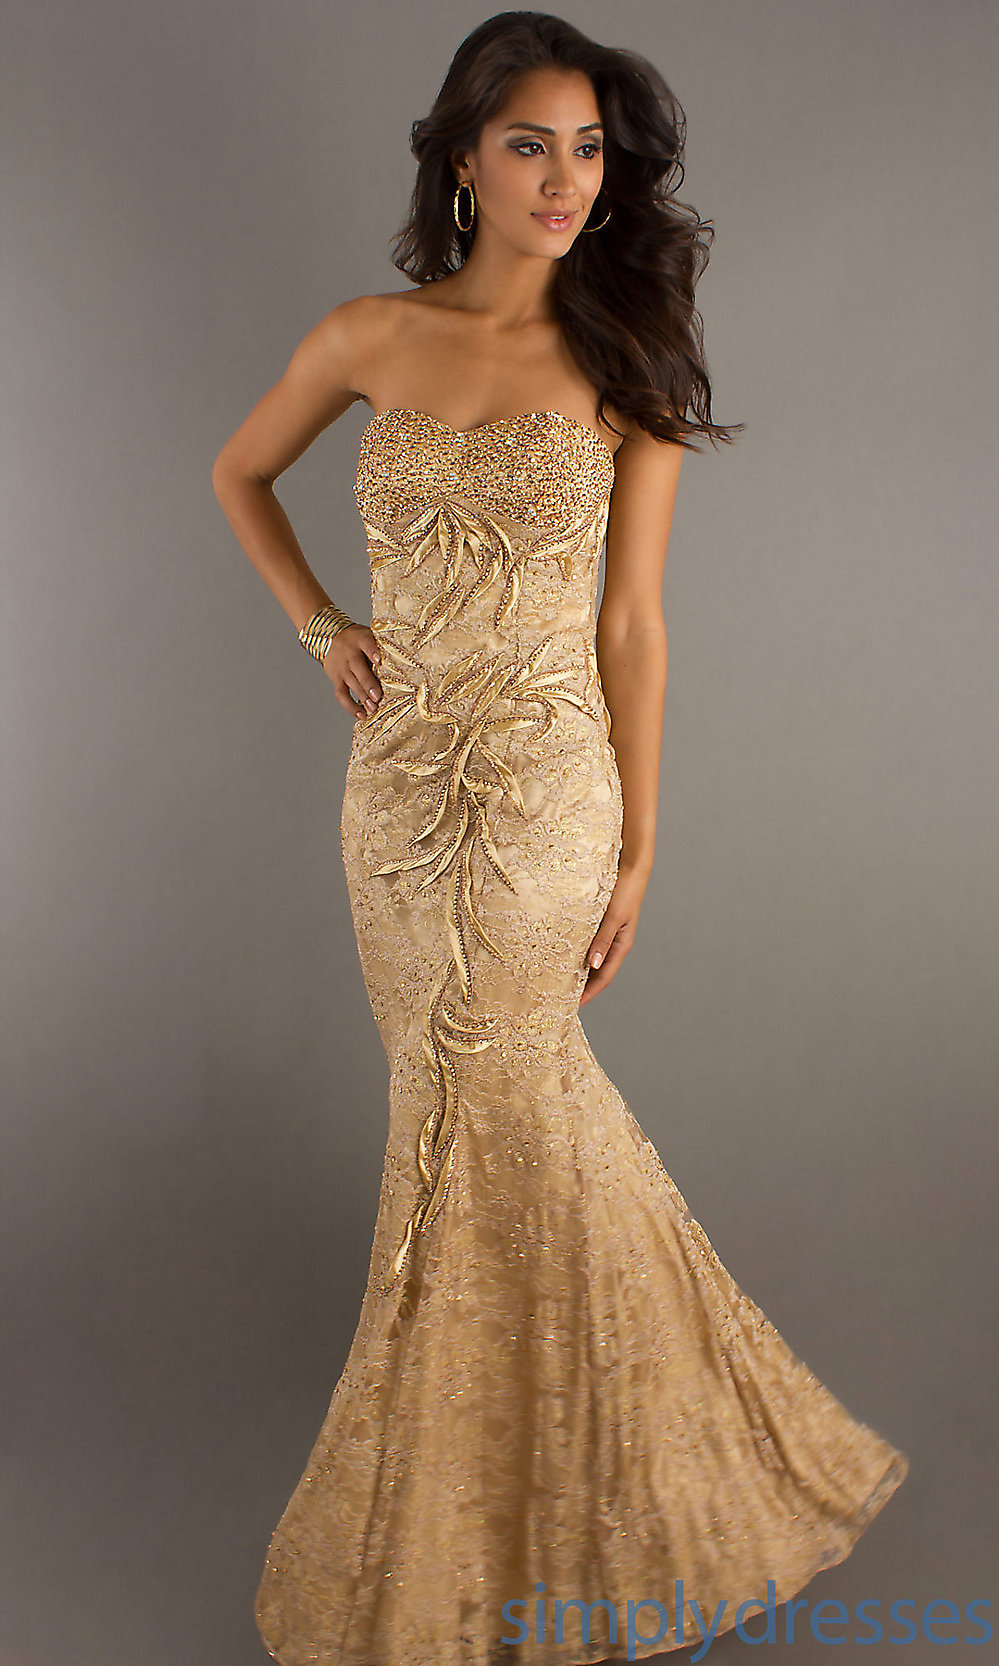 Black And Gold Dress Long : 2017-2018 Fashion Trend